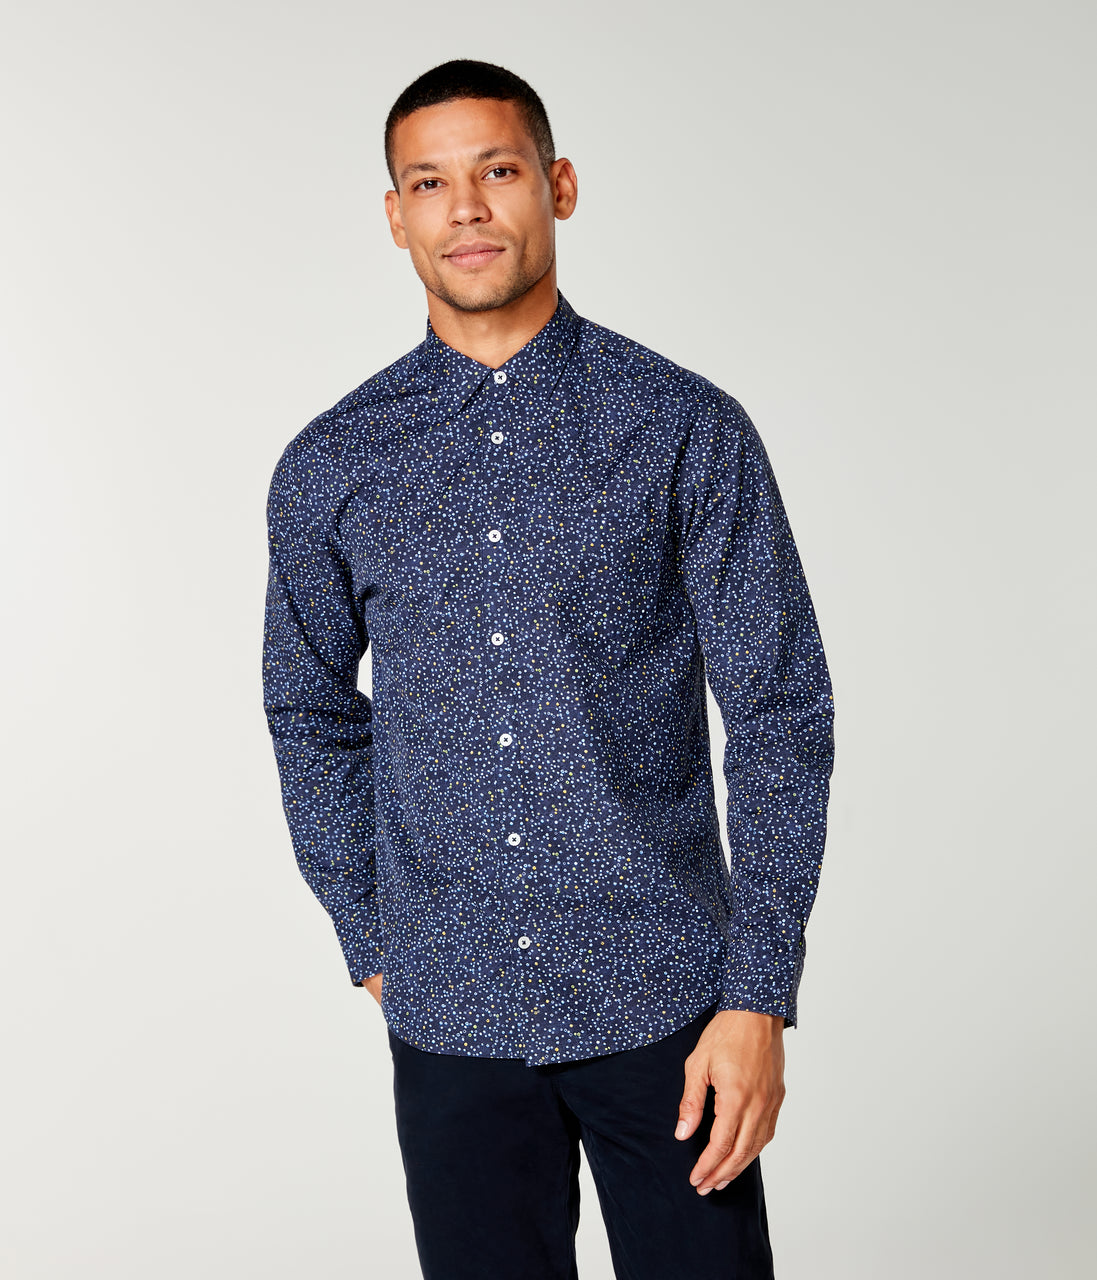 On-Point Print Shirt - Blue Topaz Organic Micro Dot - Good Man Brand - On-Point Print Shirt - Blue Topaz Organic Micro Dot